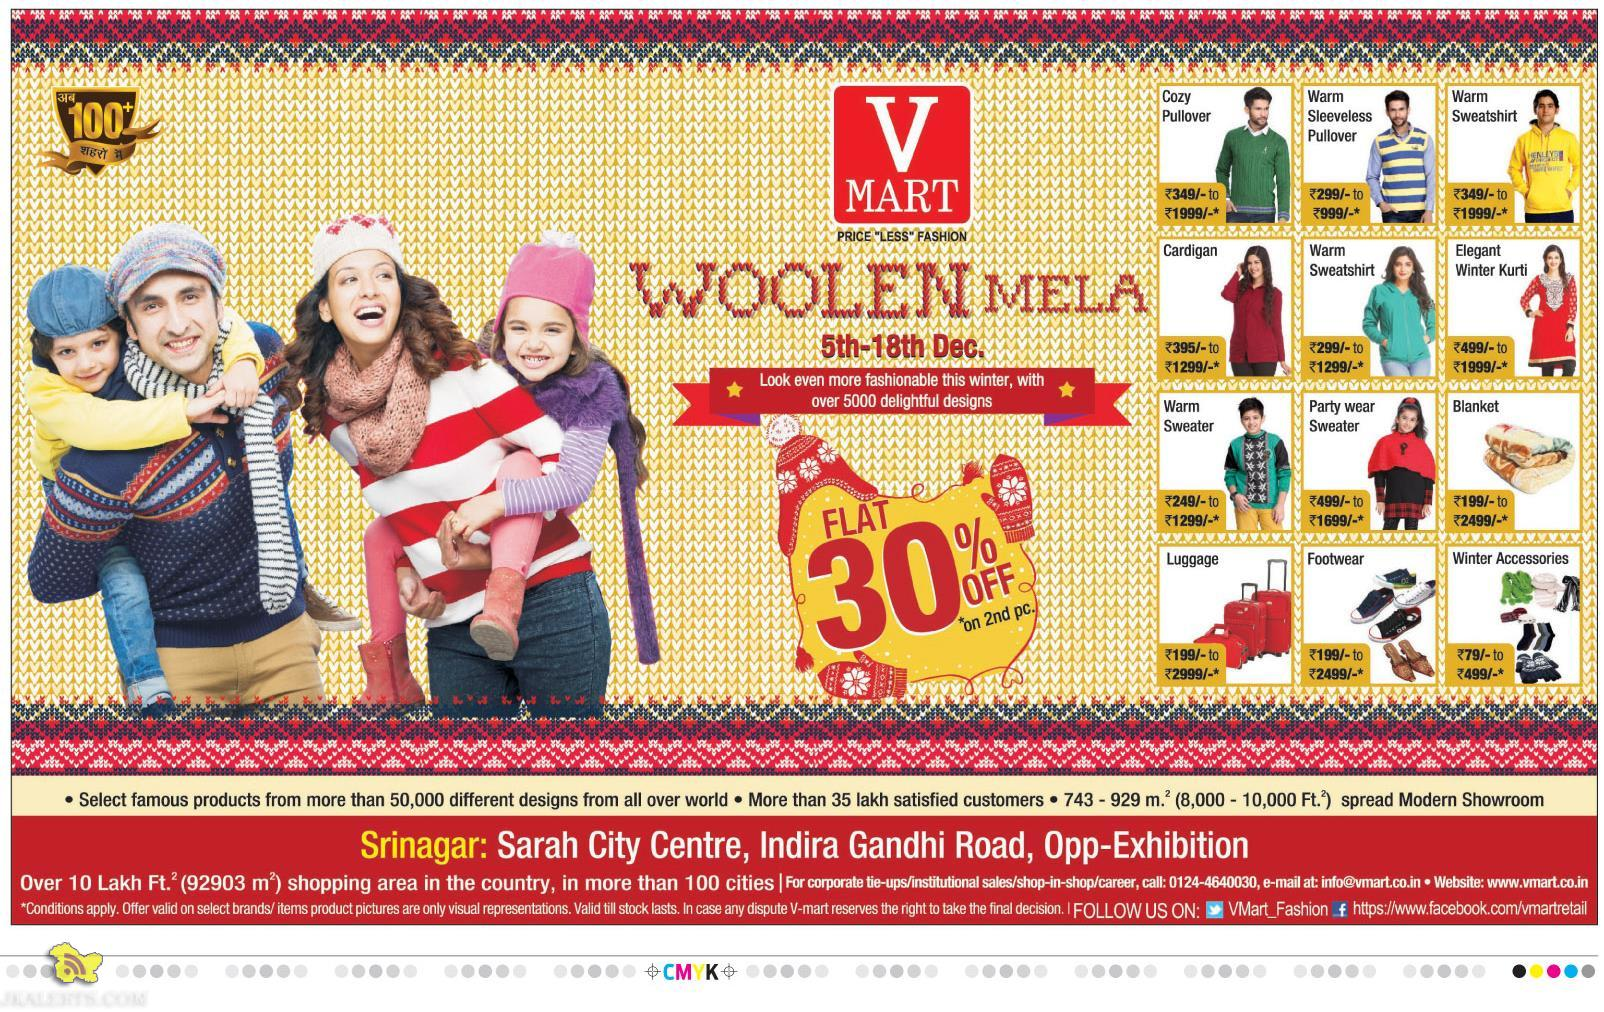 V Mart woolen Sale flat 30% off sarah city centre